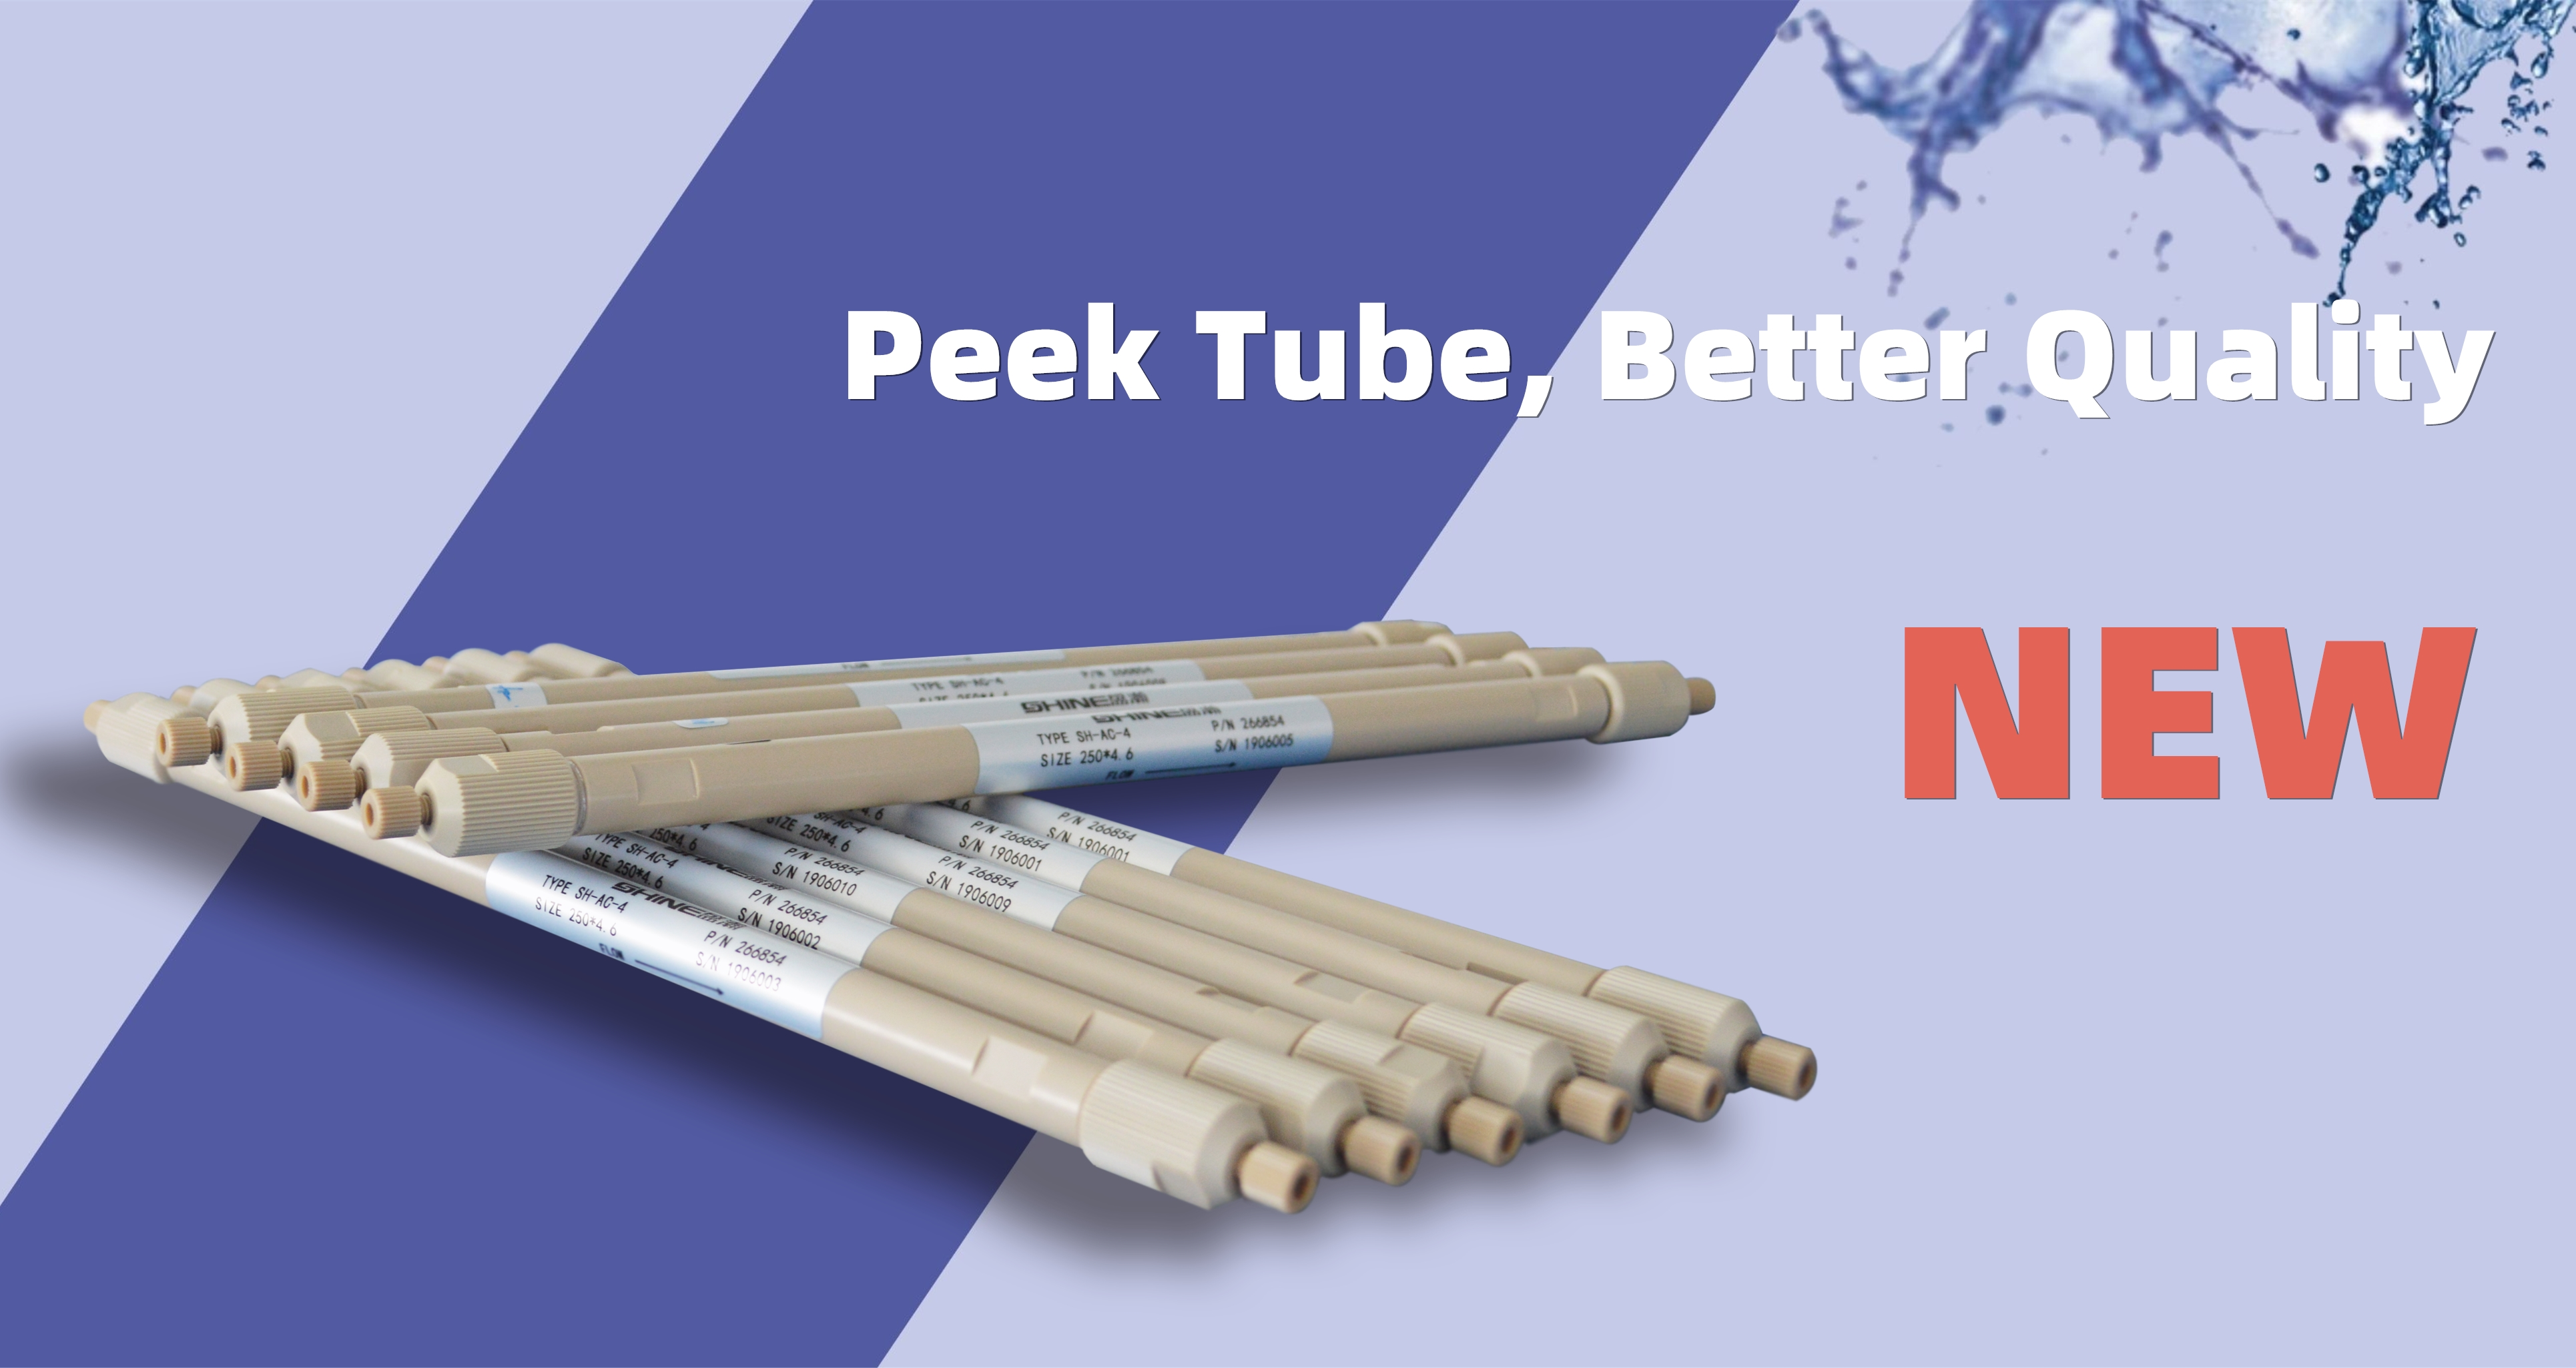 PEEK Tube, Better Performance